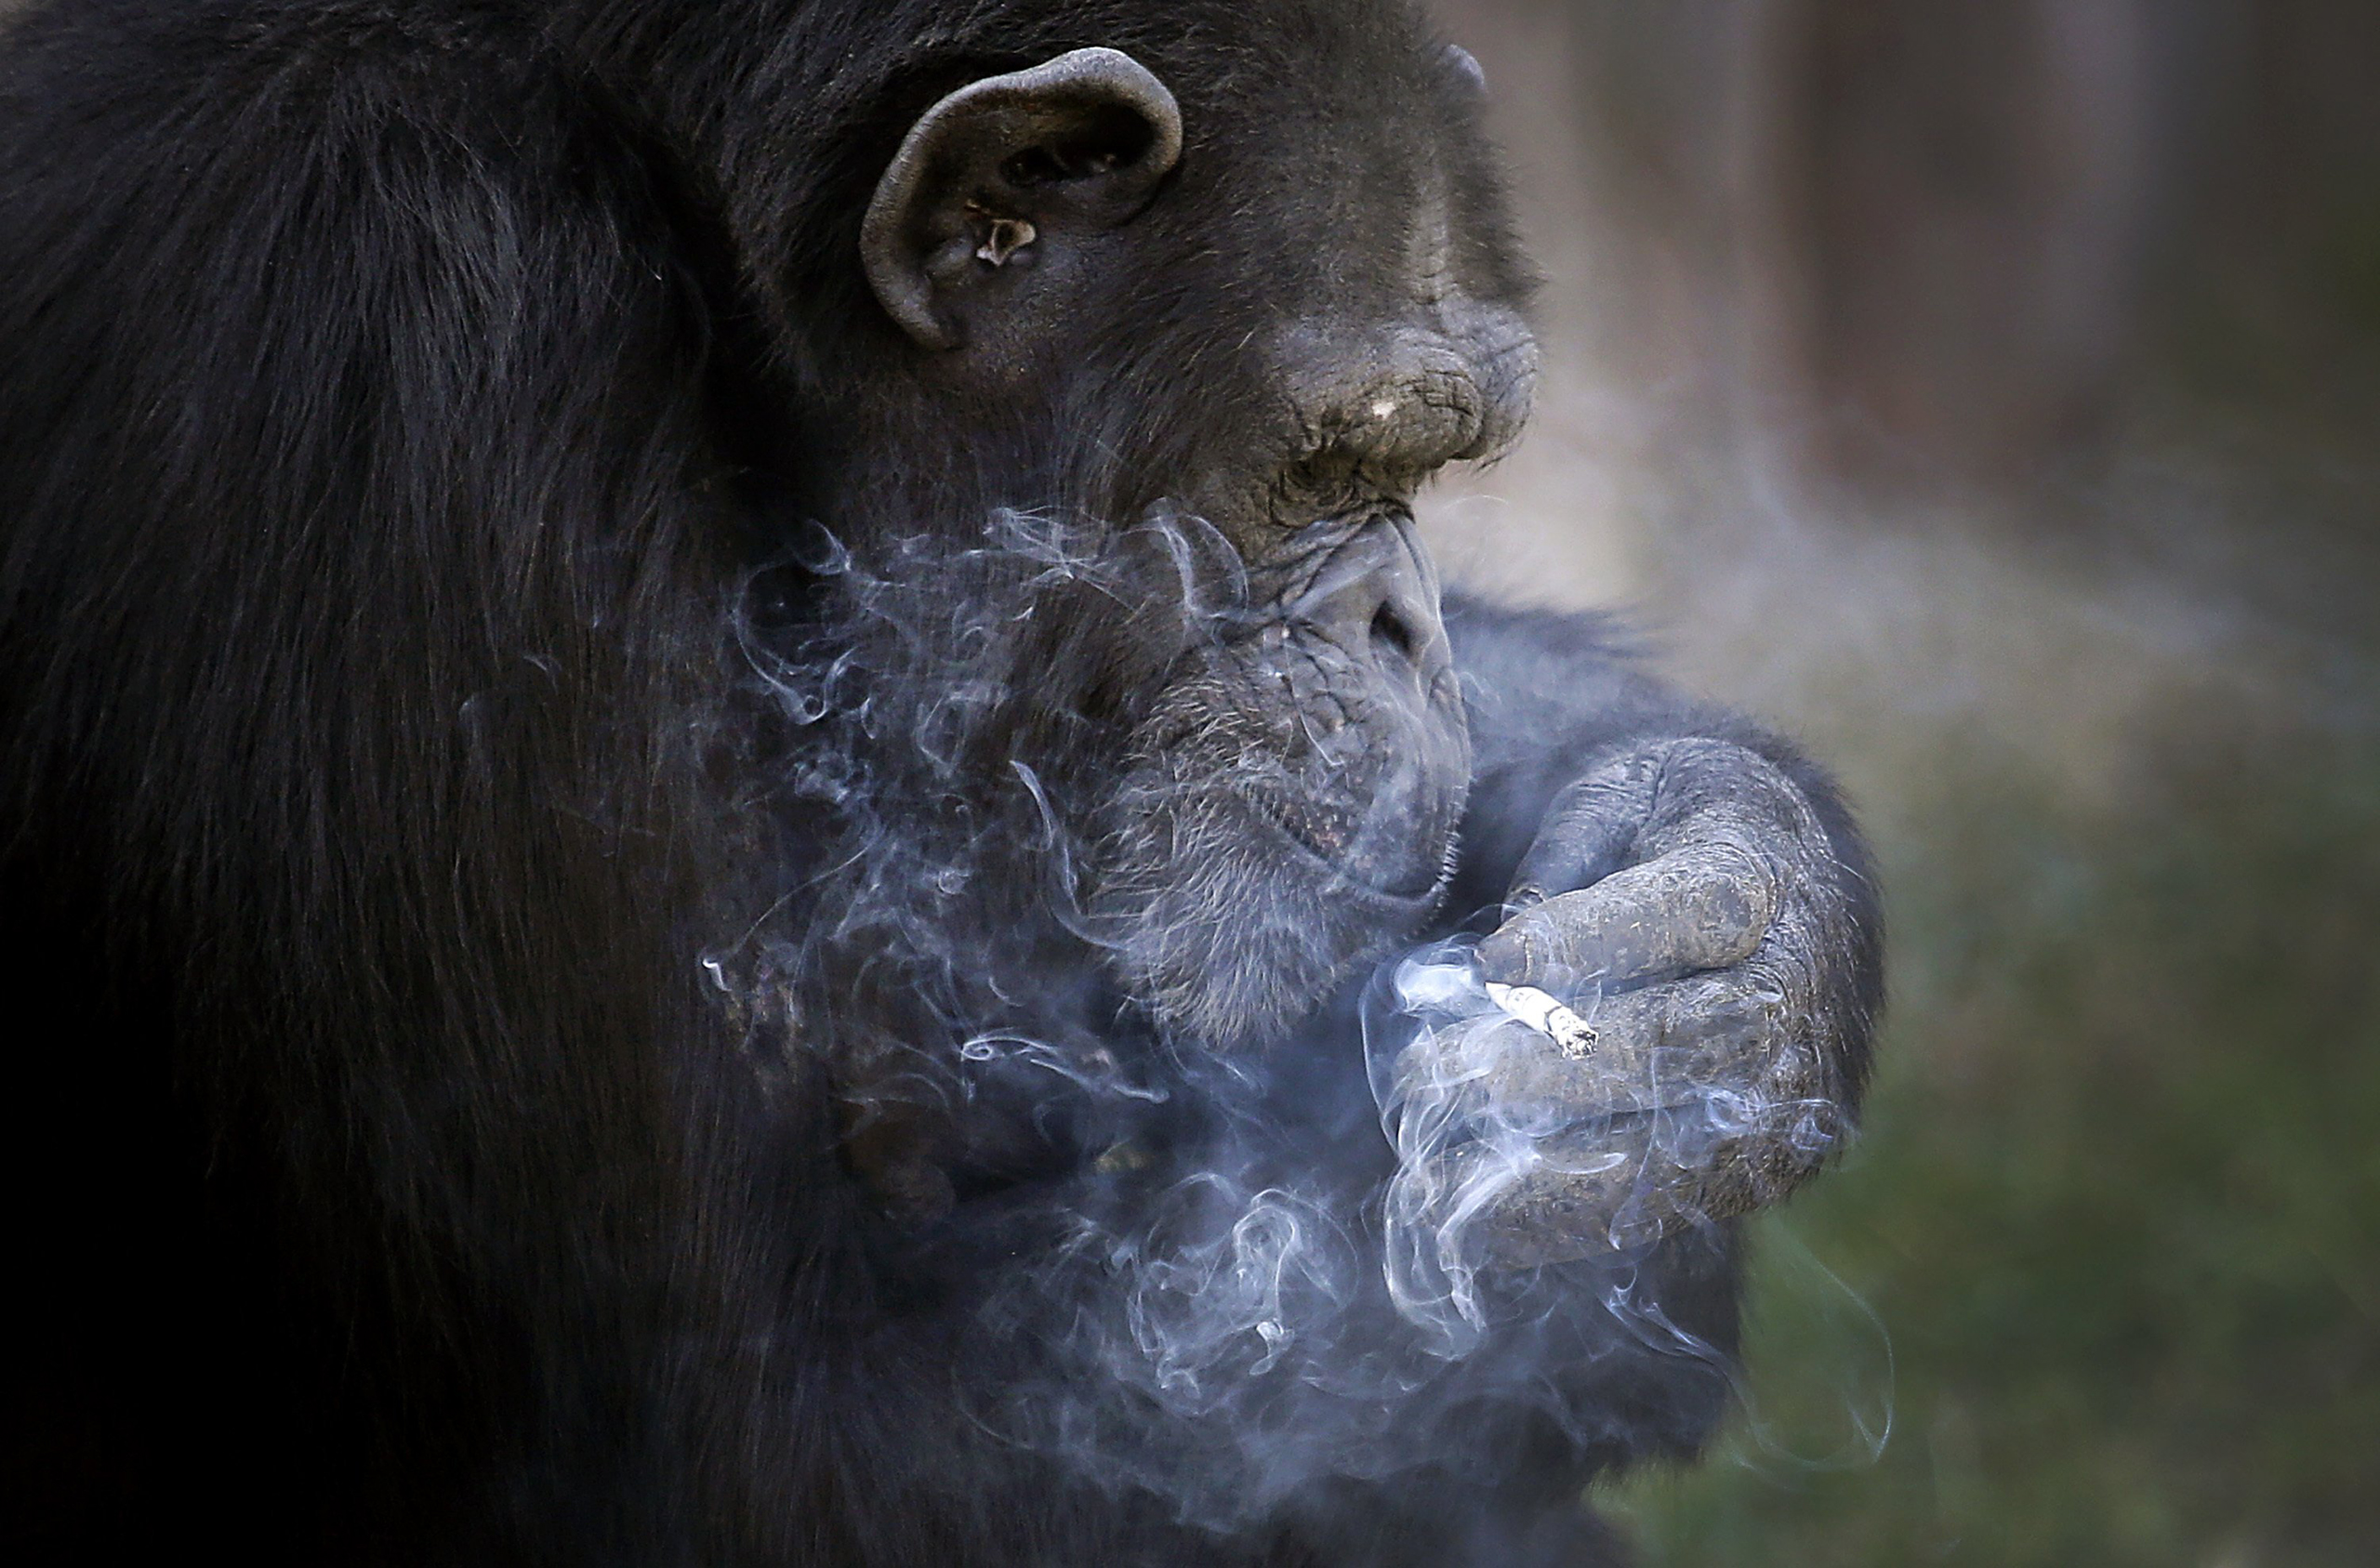 Azalea, a 19-year-old female chimpanzee whose Korean name is  Dallae,  smokes a cigarette in her enclosure at the Central Zoo in Pyongyang, North Korea, on Oct. 19, 2016.